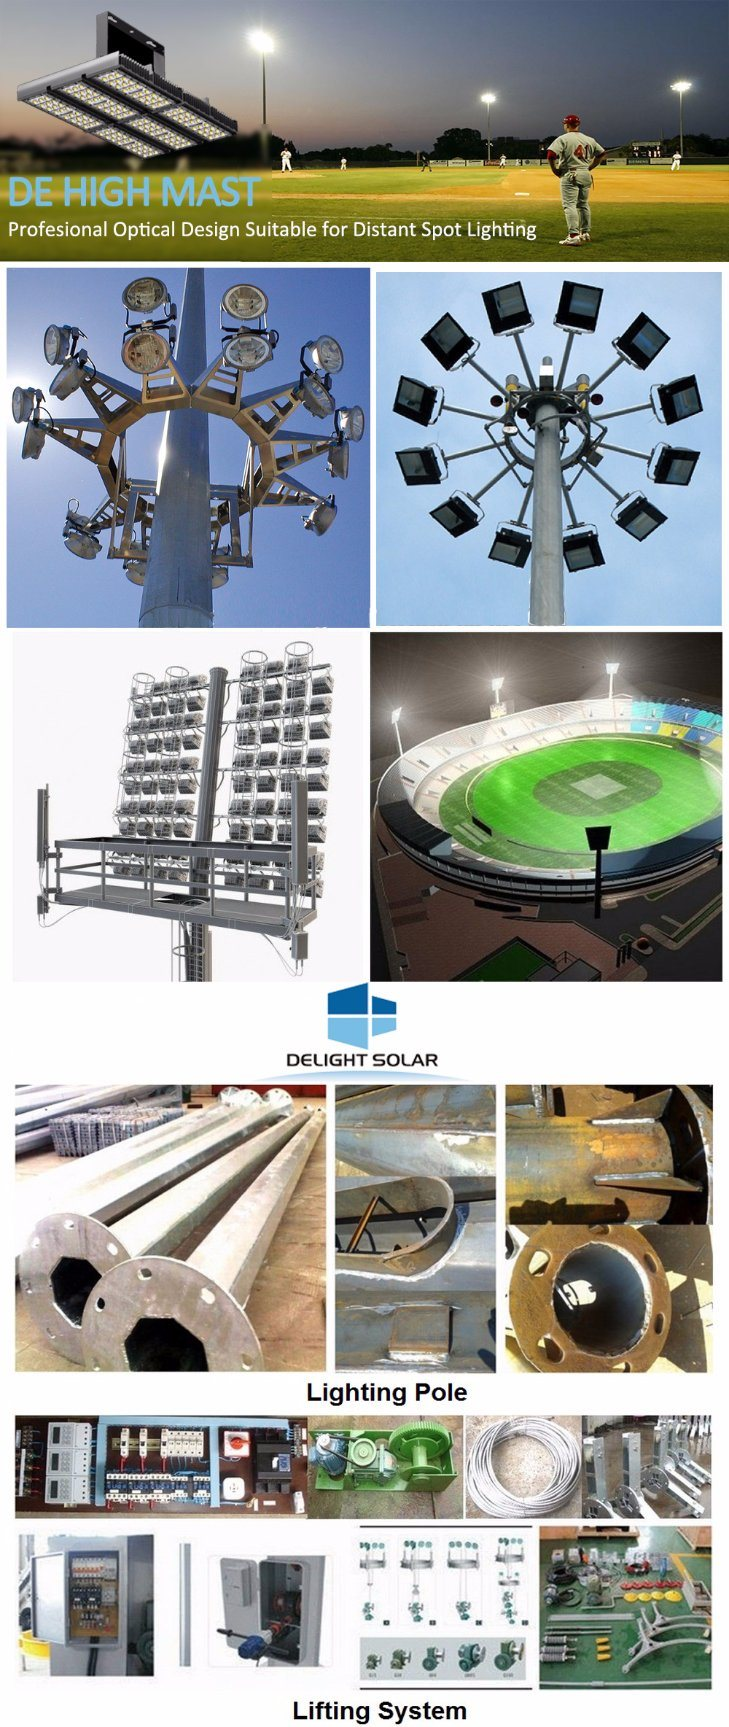 Stadium Light 2000W High-Pressure Sodium Elevator System High Mast Lighting